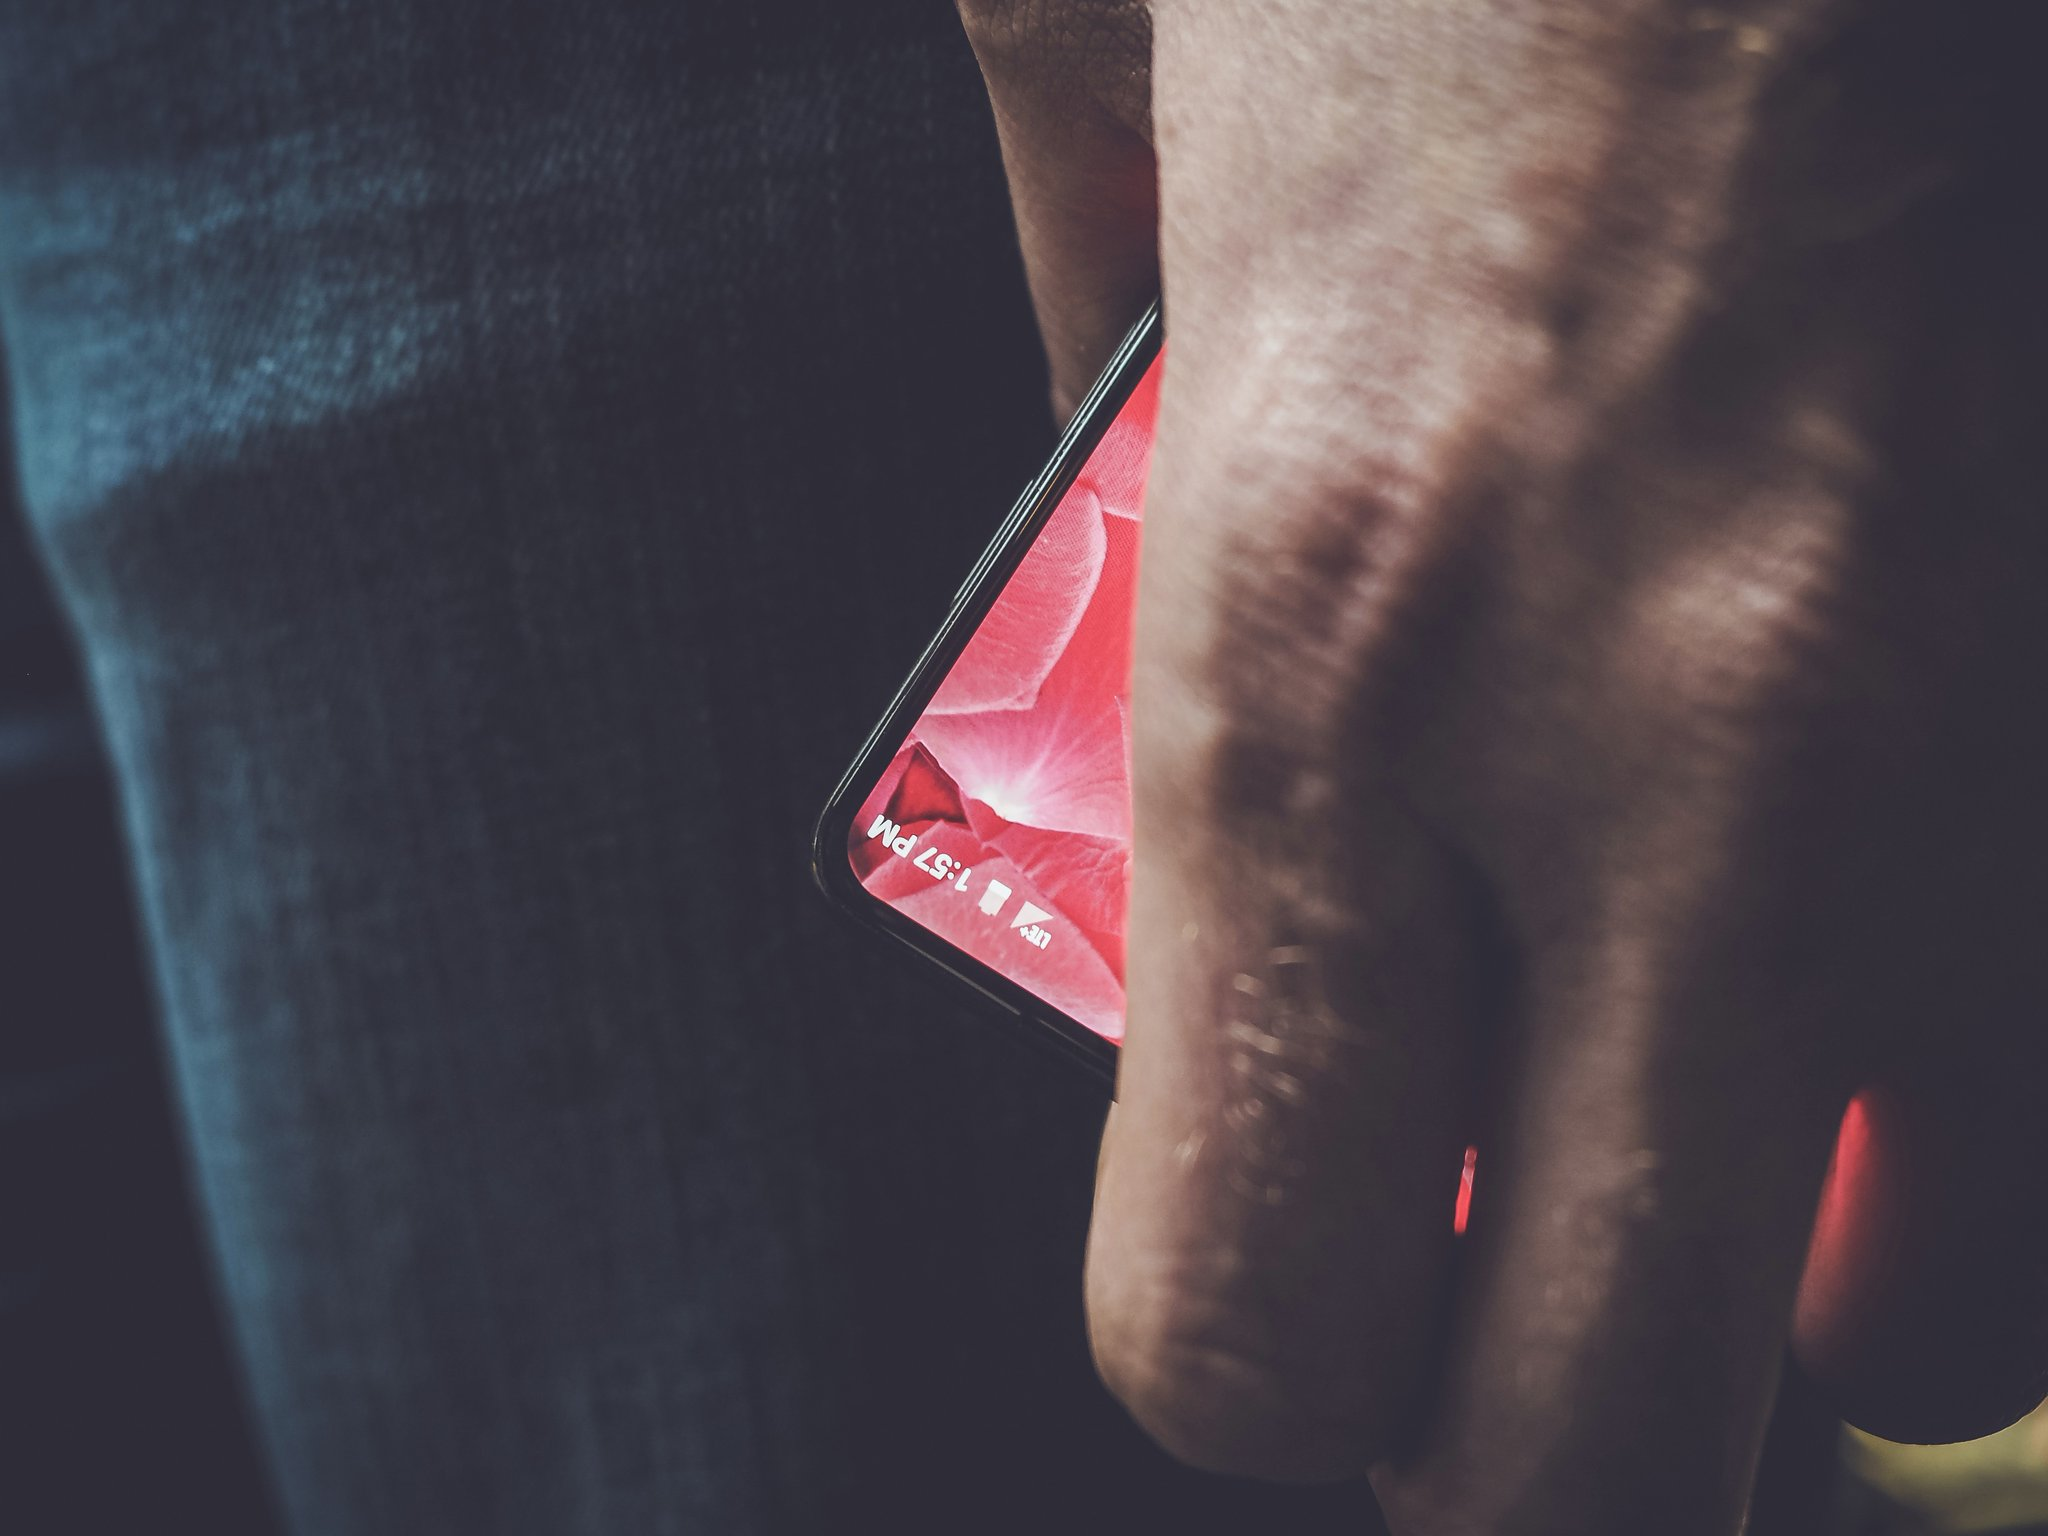 Andy Rubin's Essential Smartphone Gets Benchmarked